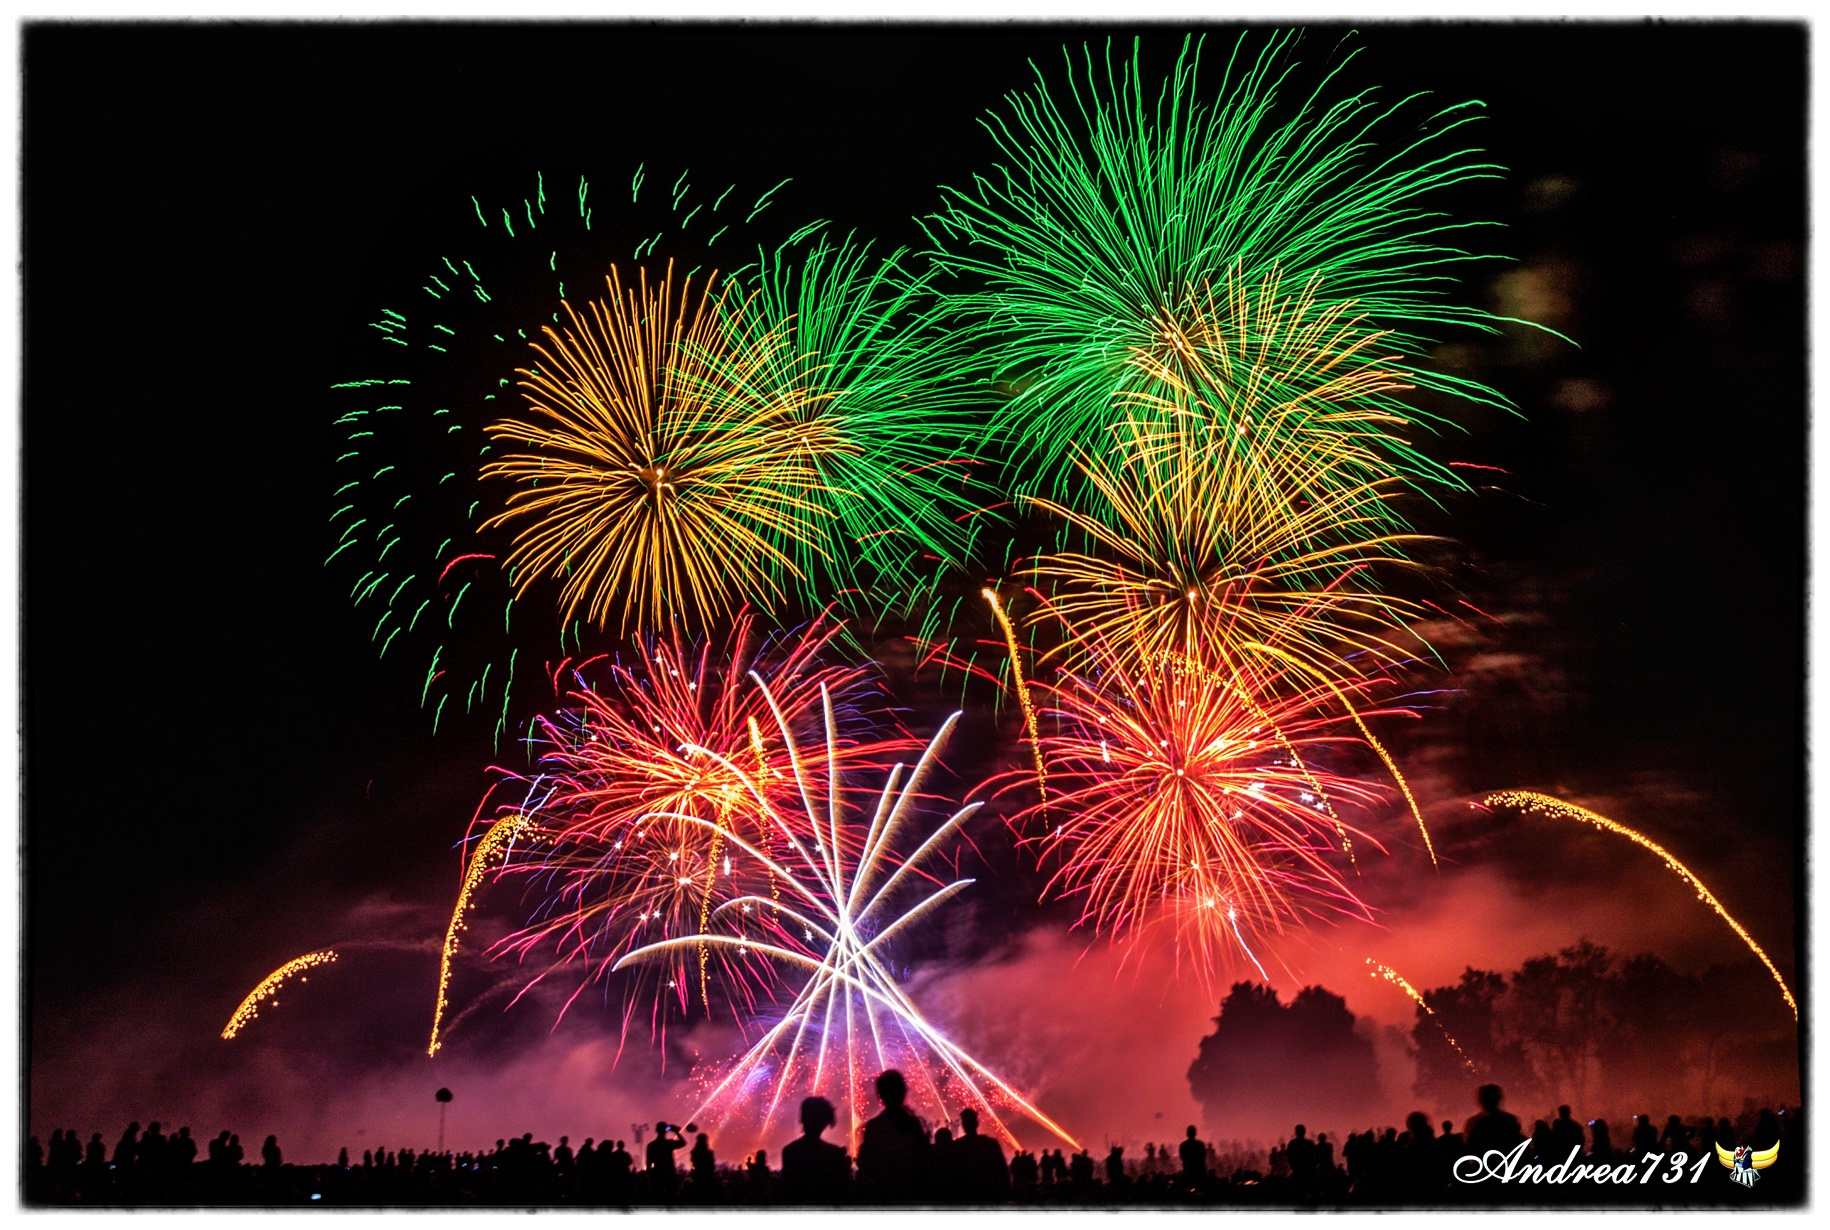 Fireworks by Andrea731